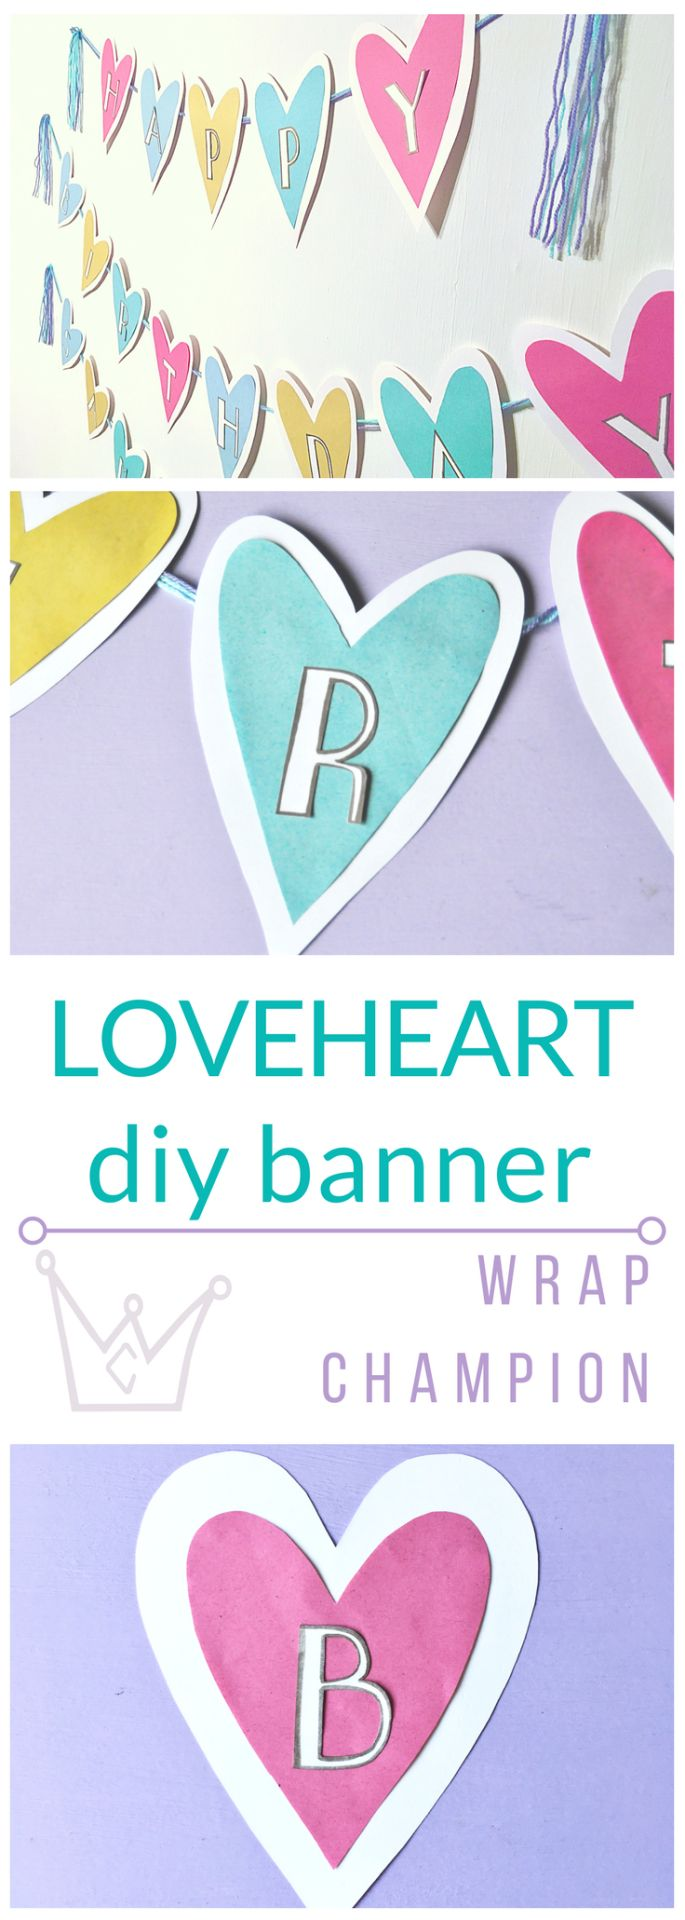 DIY Loveheart Homemade Banner for the special people in your life. Super quick and easy